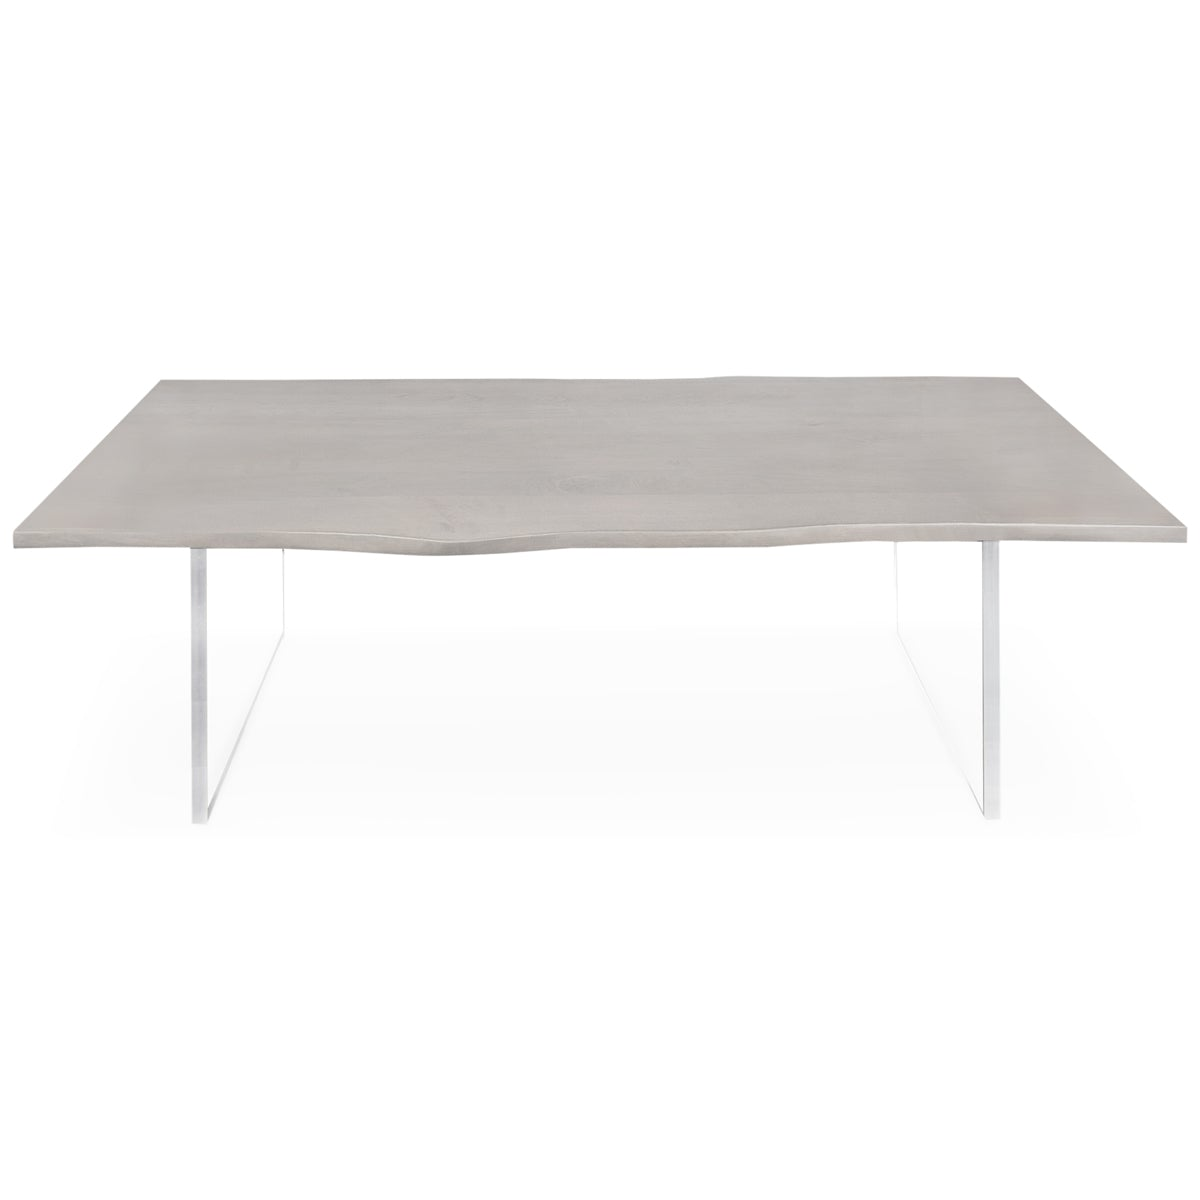 Eco Walnut Slab Dining Table in Grey Stain